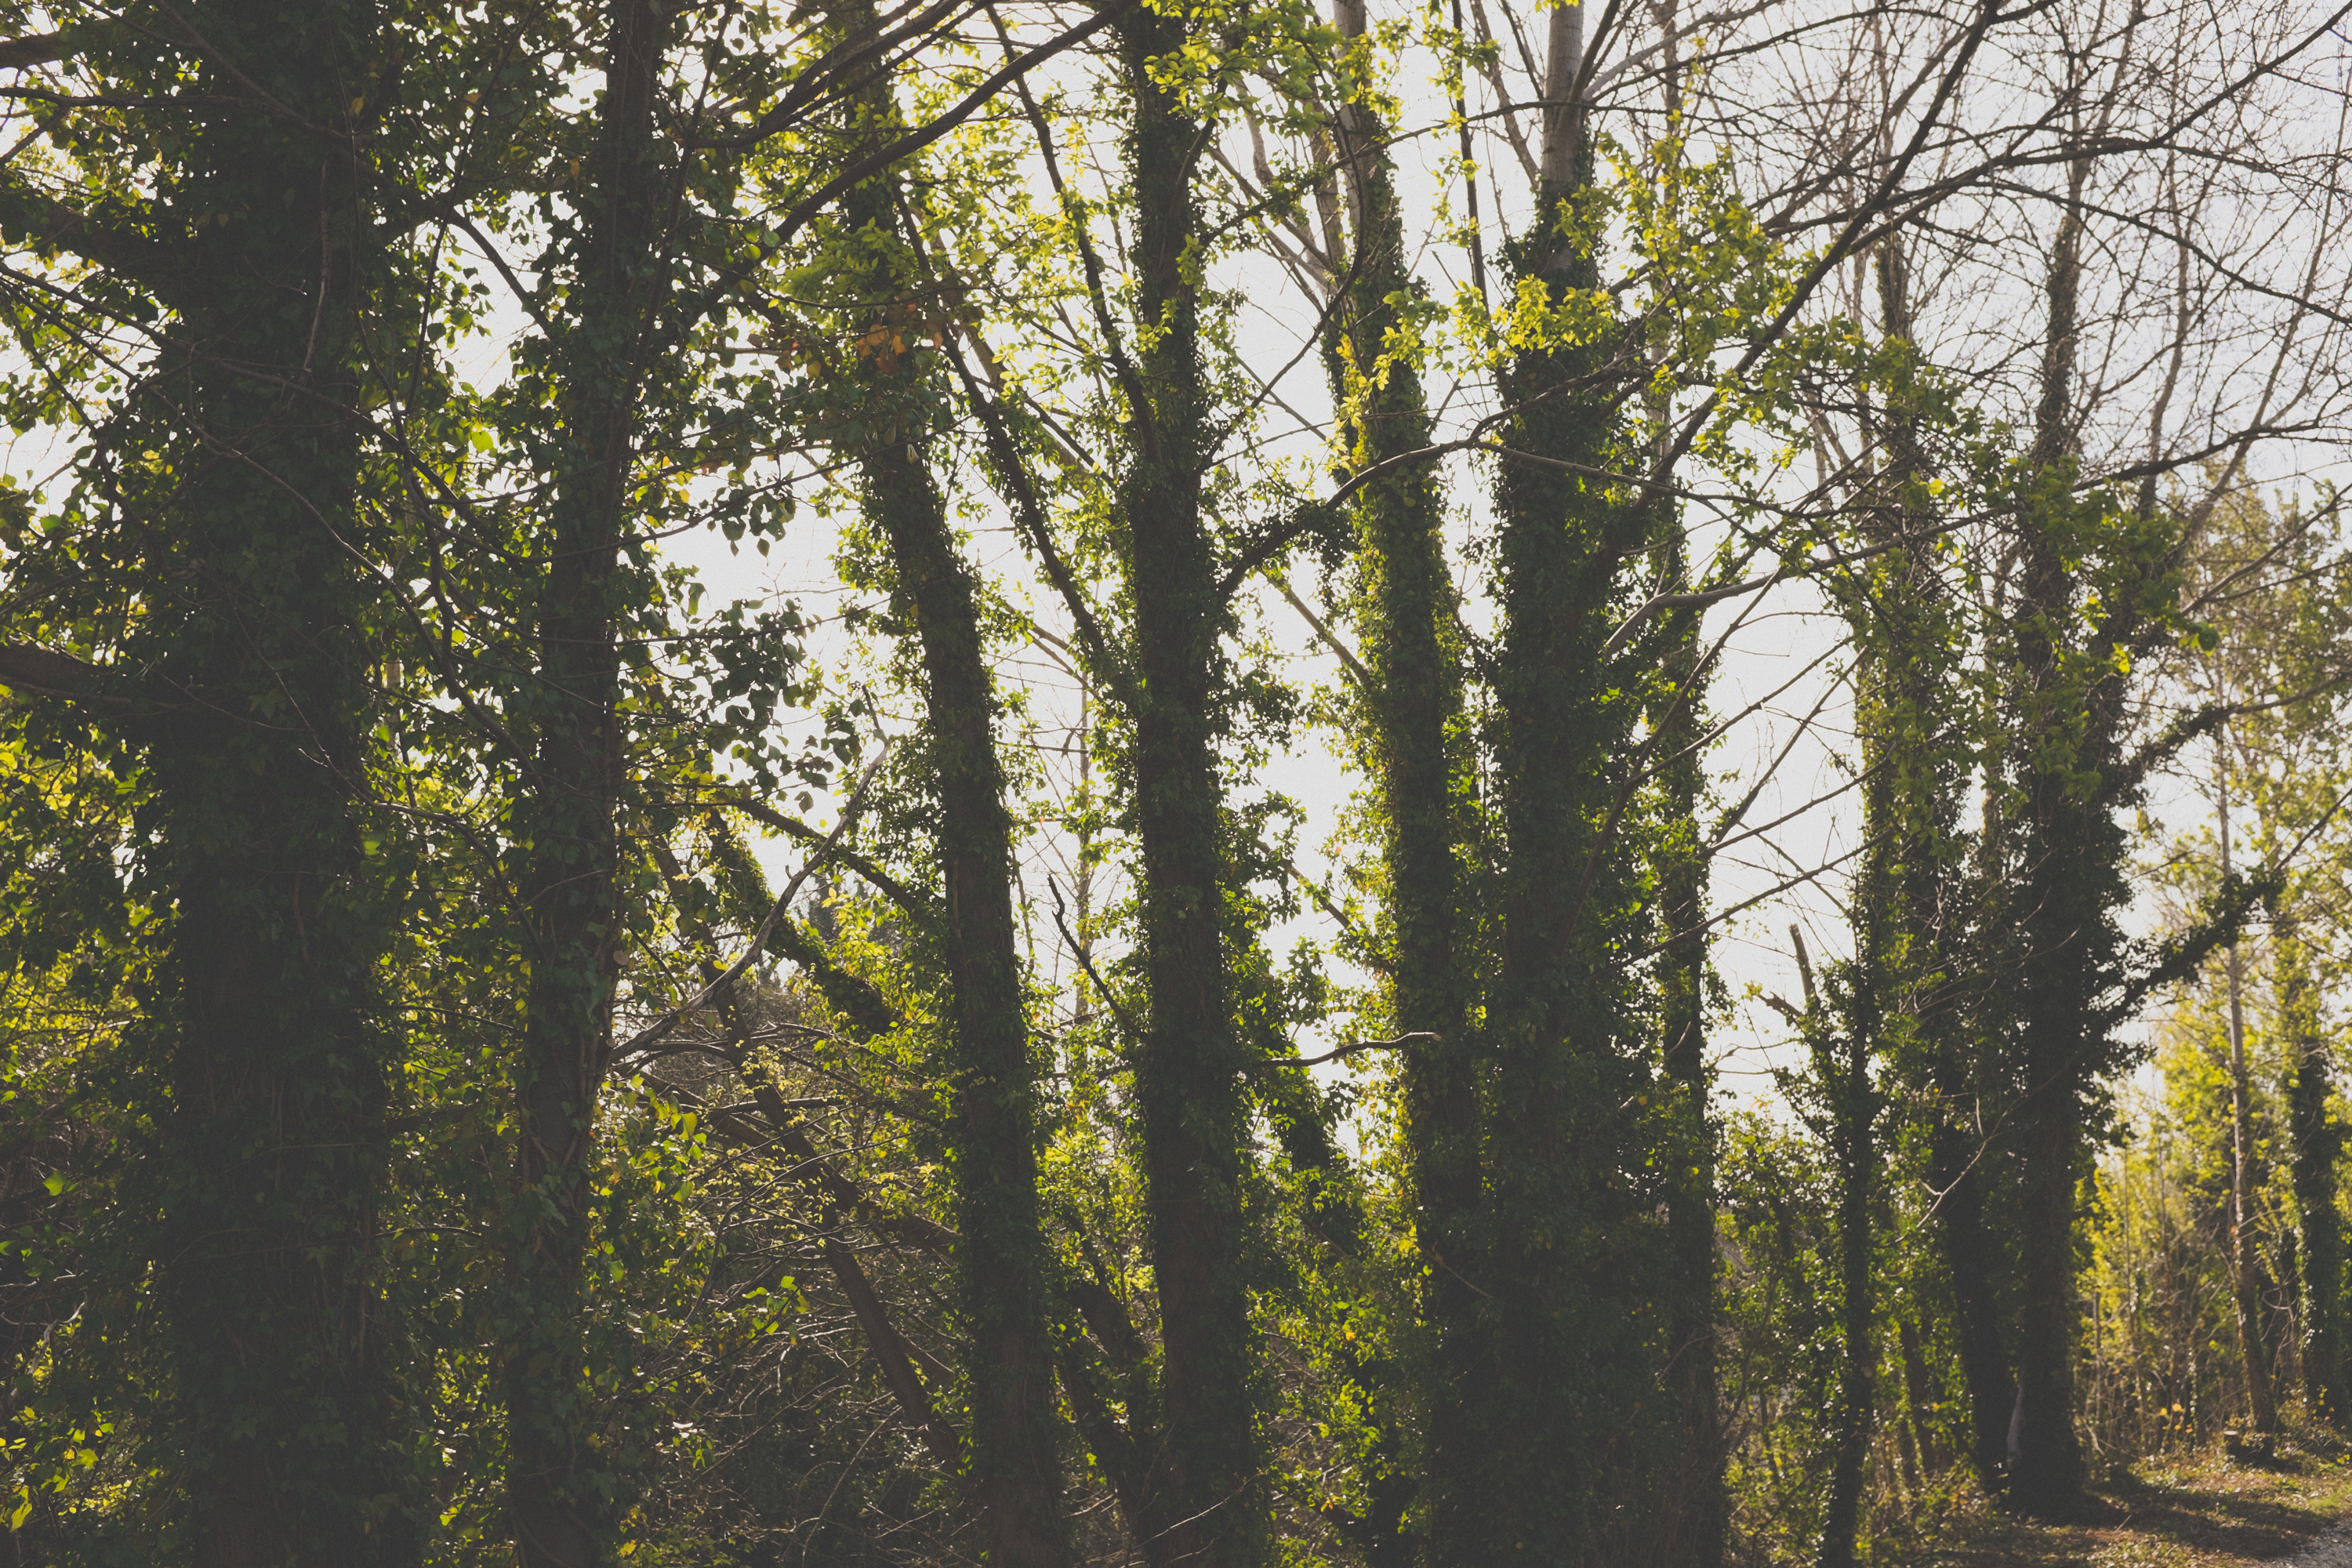 Green Trees in Forest - Picography Free Photo